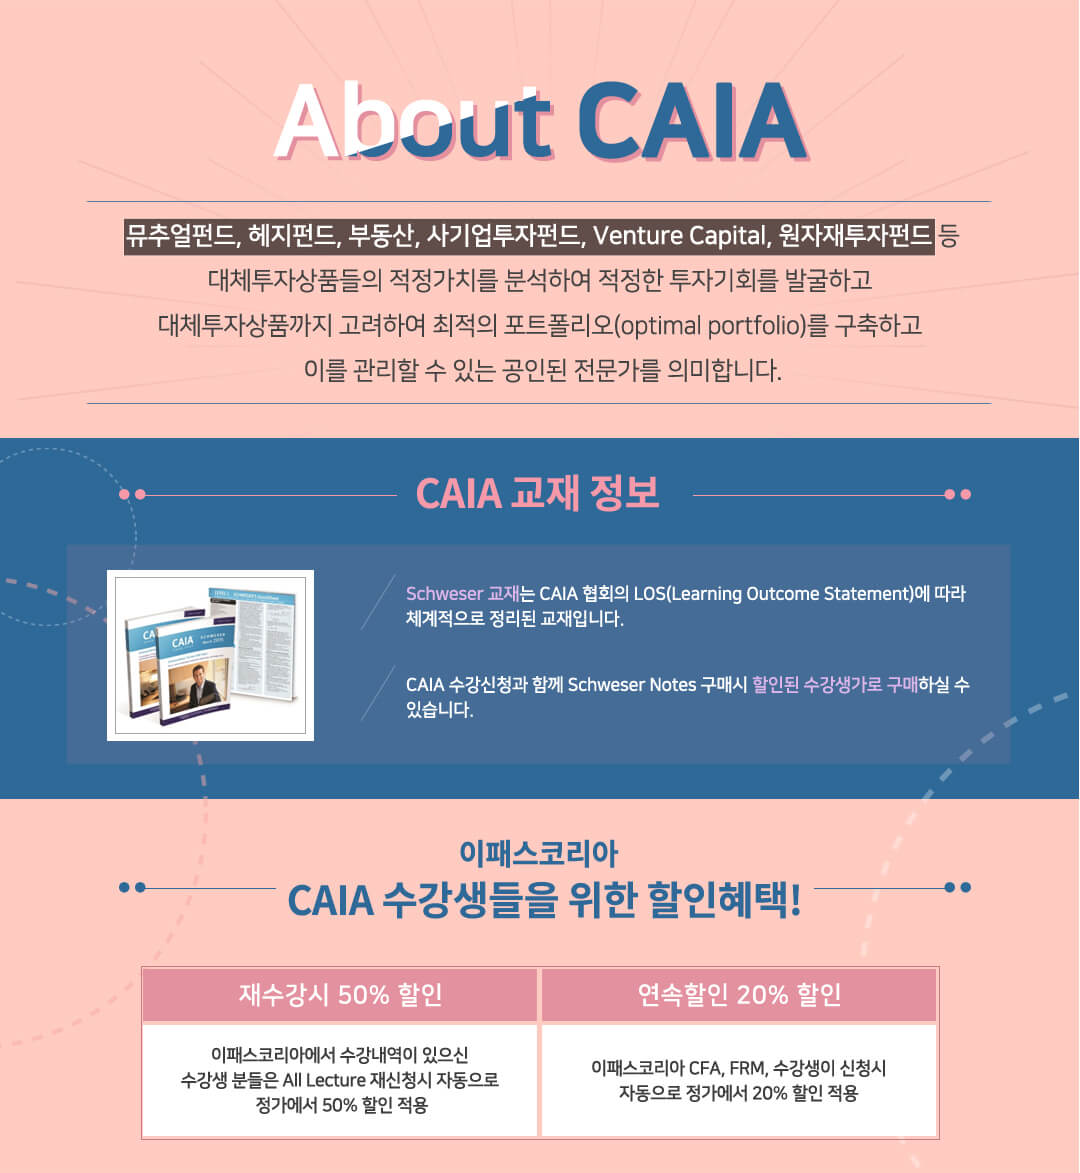 About CAIA